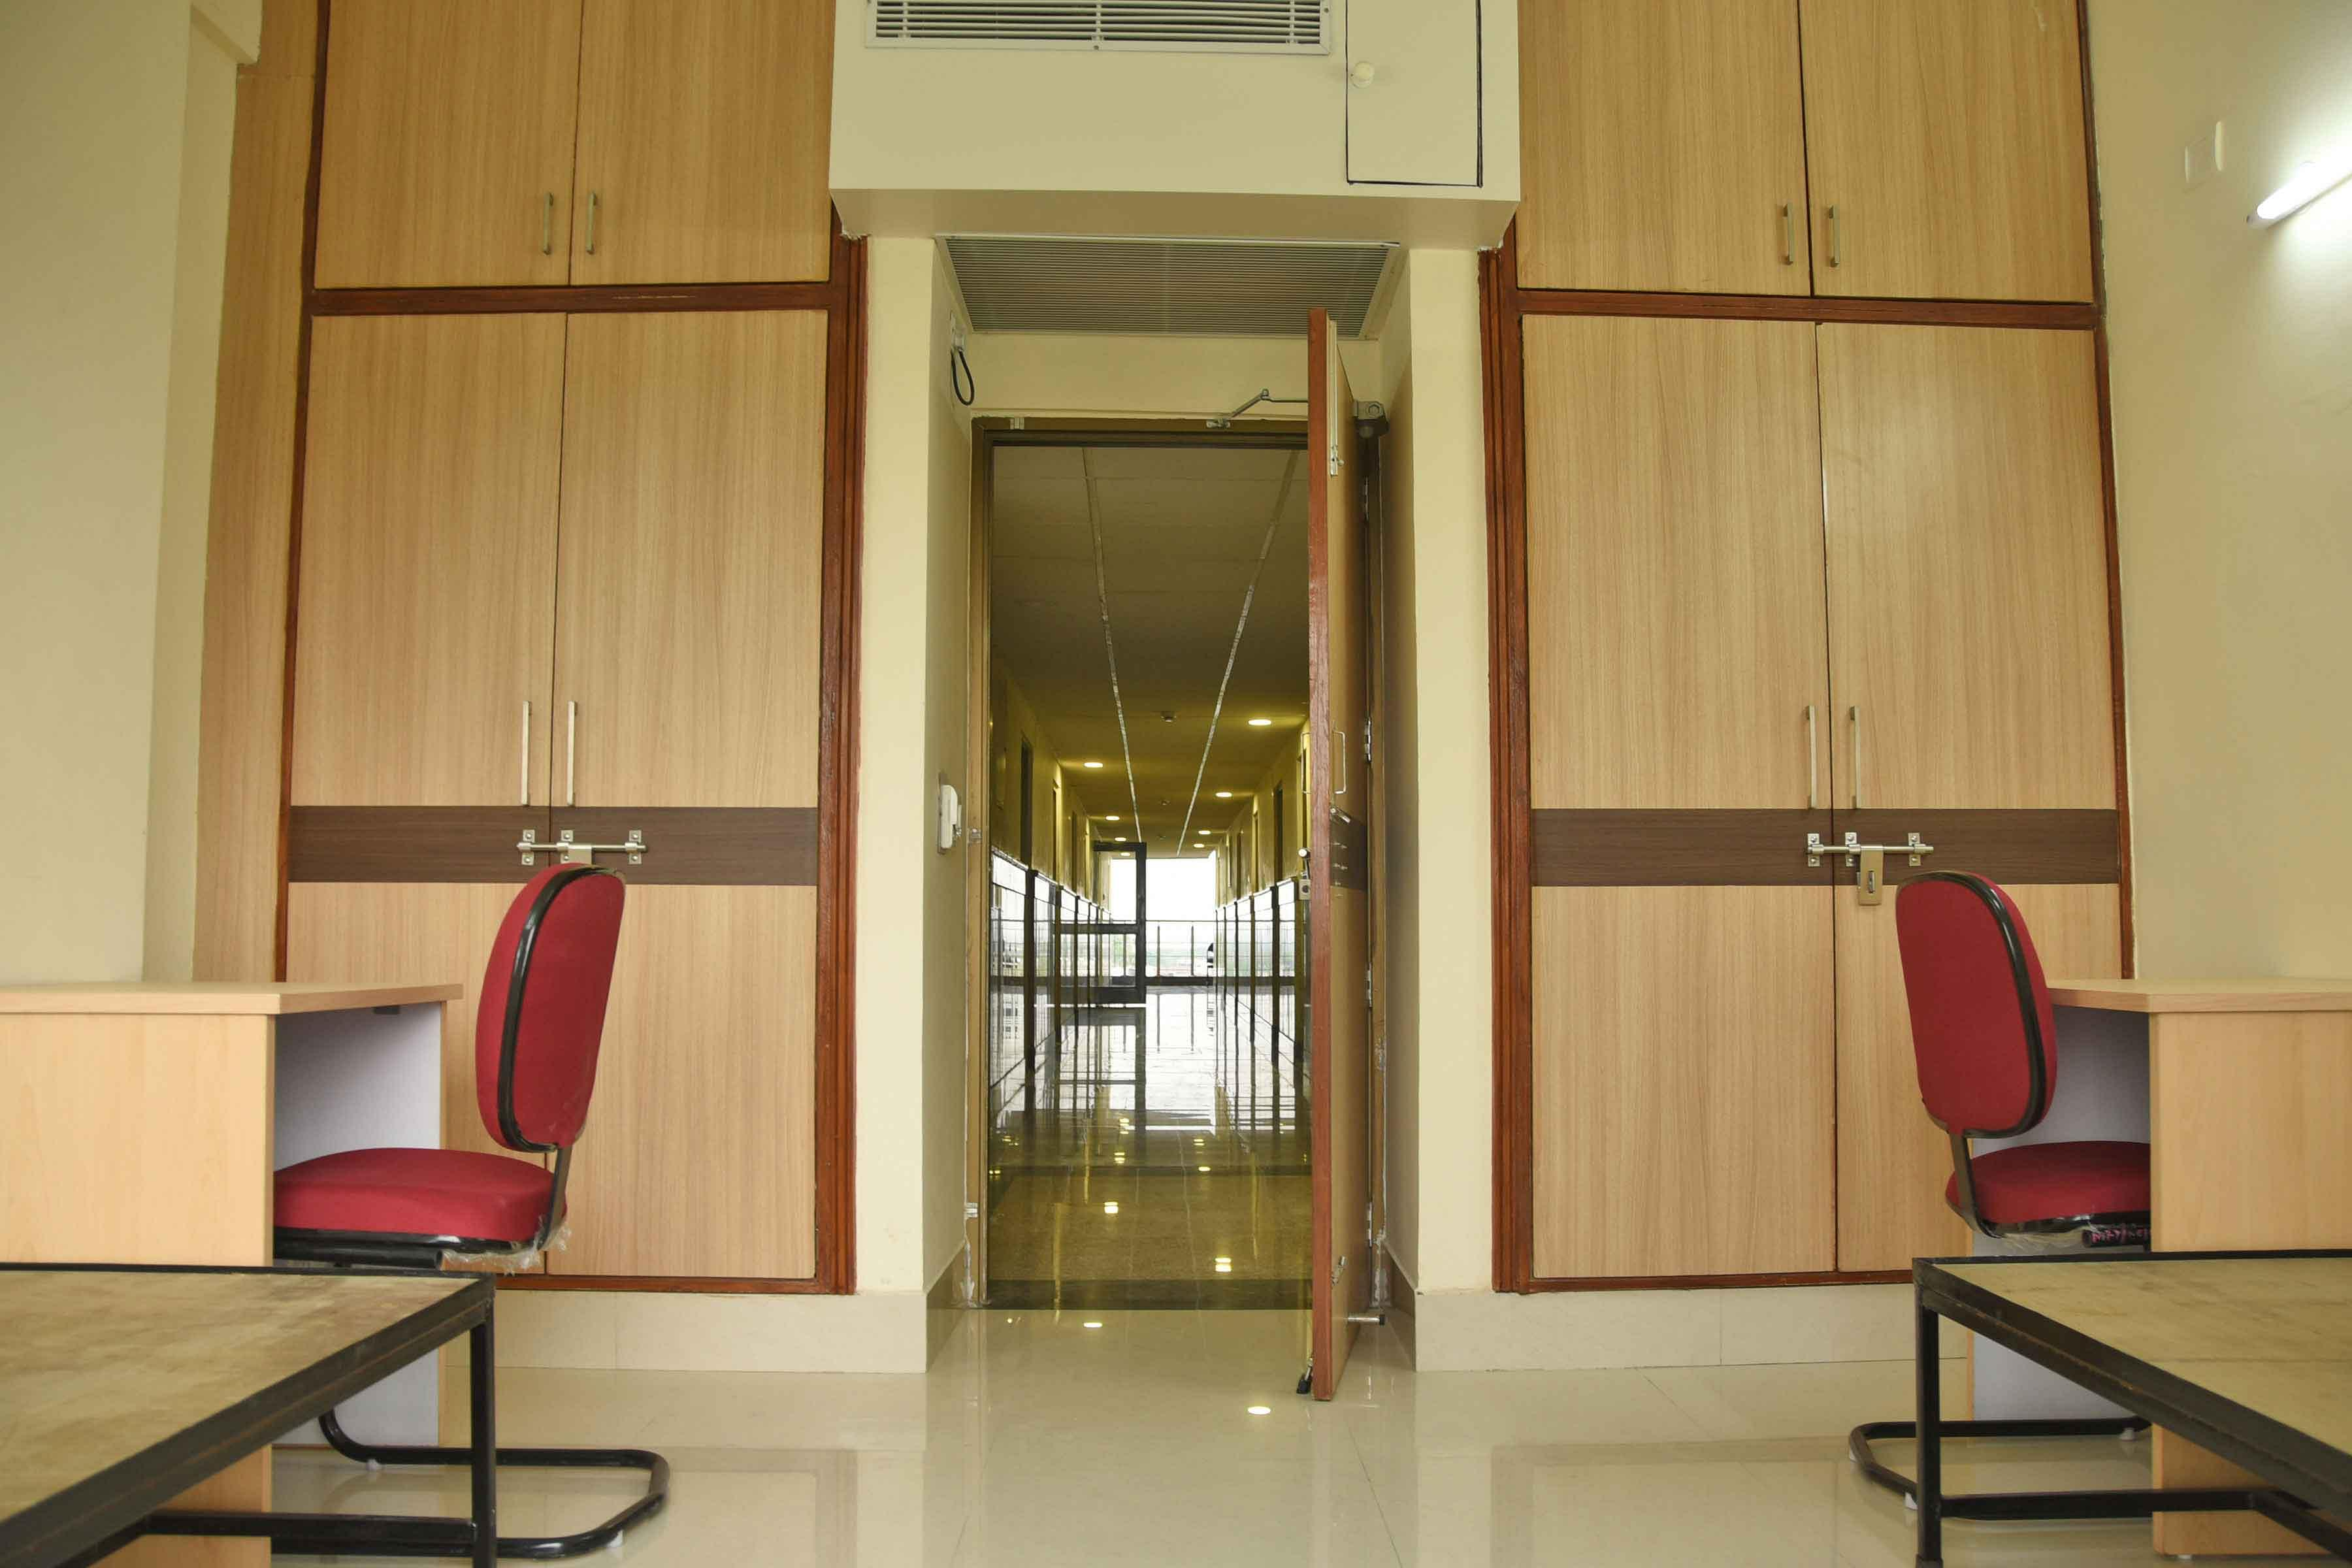 National Institute Of Fashion Technology Nift New Delhi Images Photos Videos Gallery 2020 2021